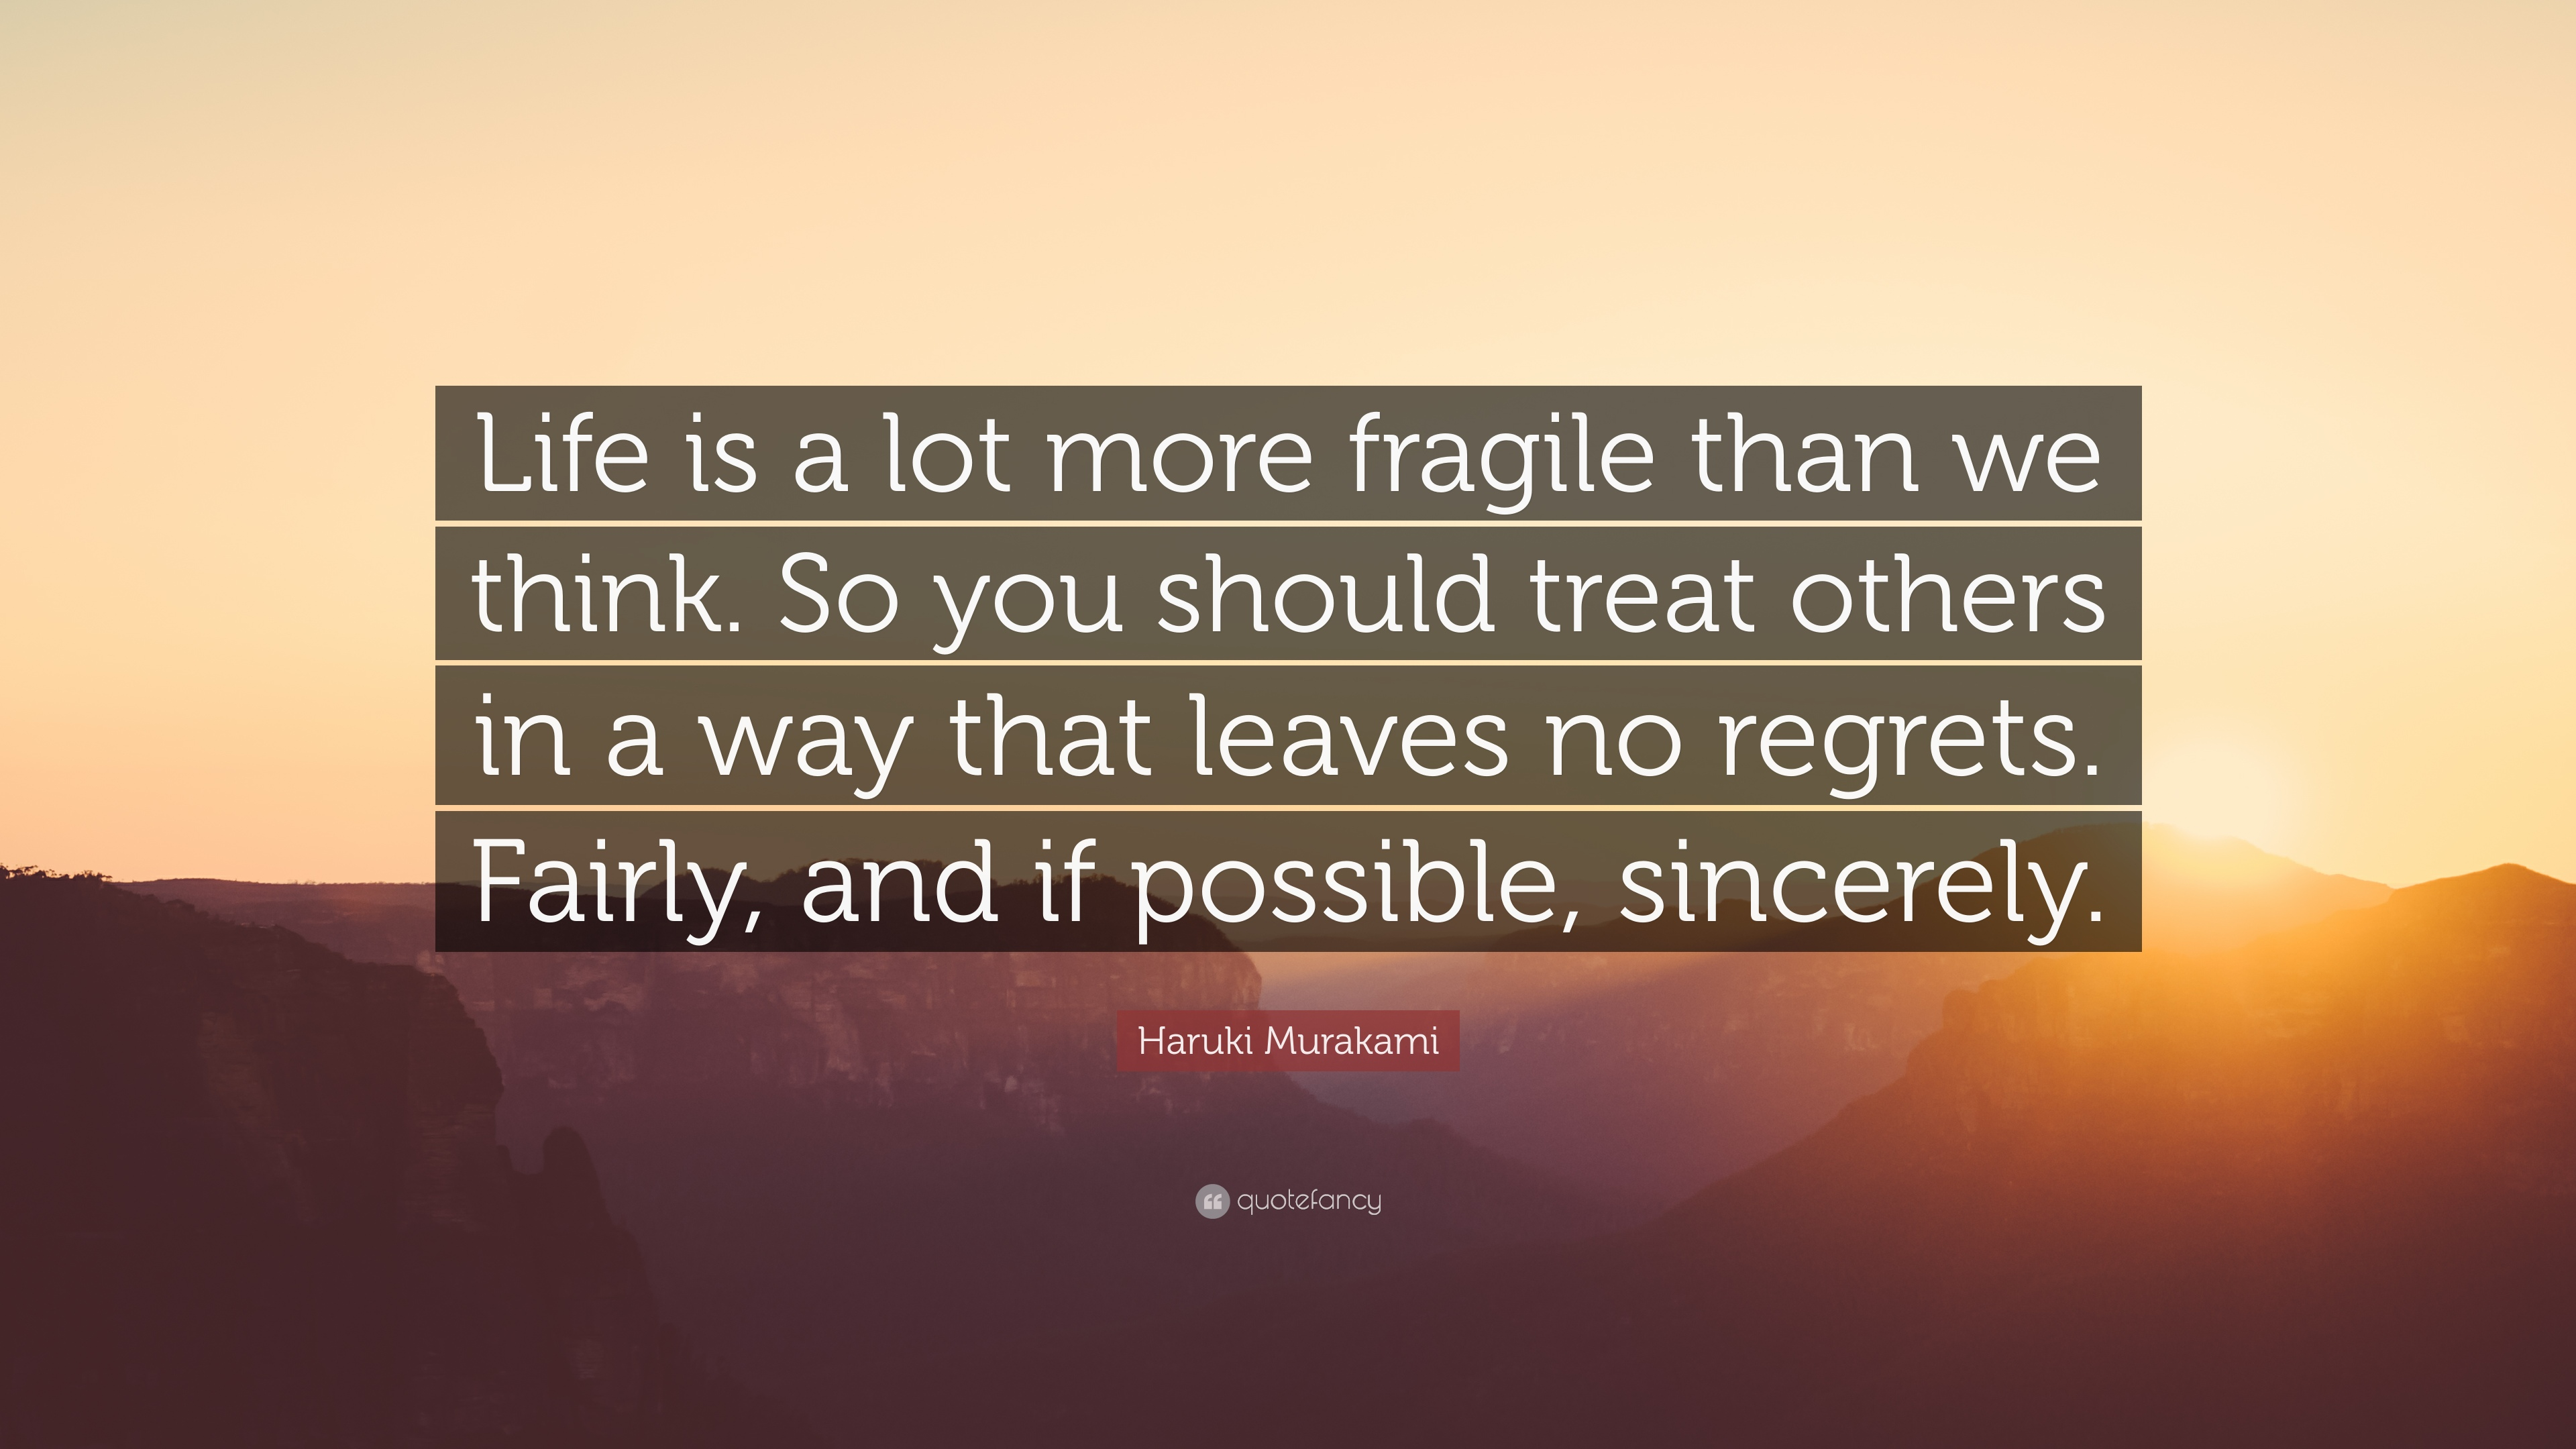 Haruki Murakami Quote Life Is A Lot More Fragile Than We Think So